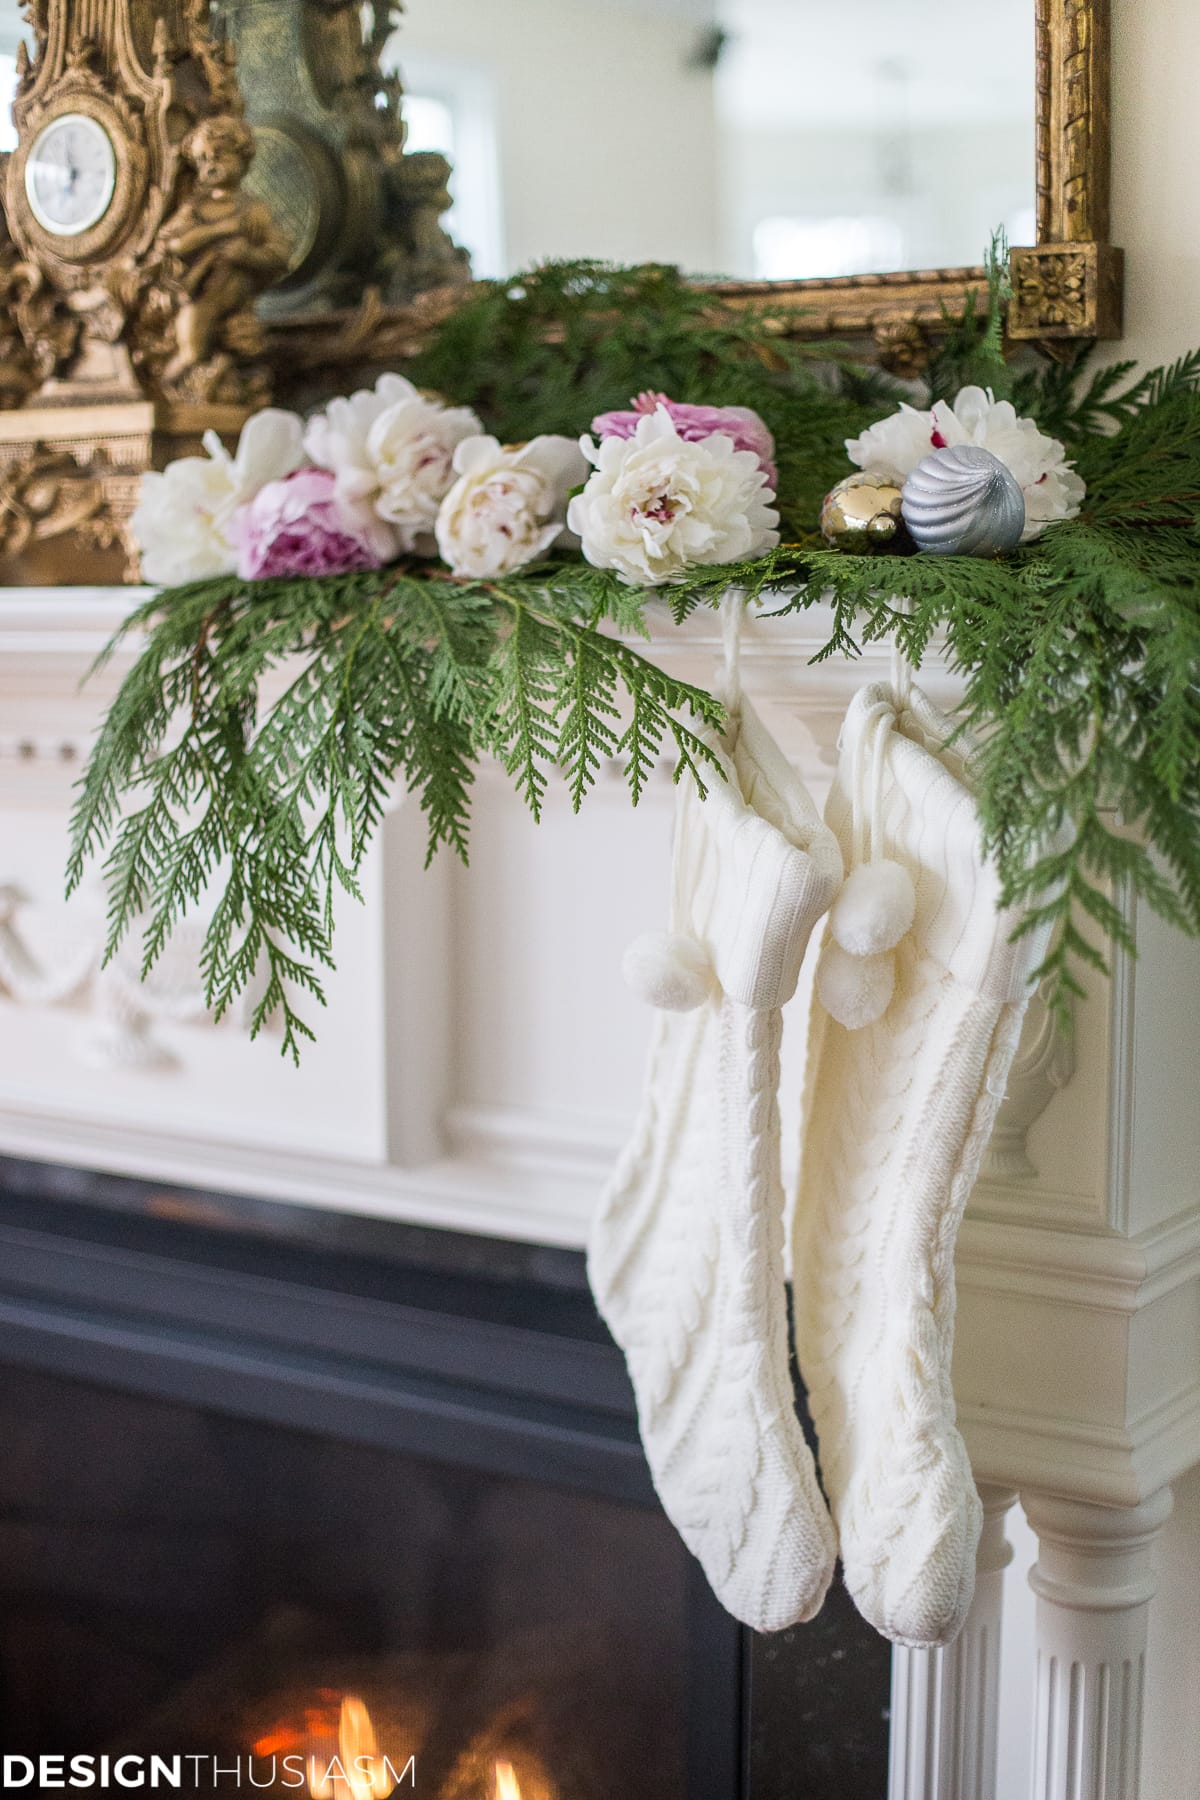 Romantic Holiday Decorating With A Christmas Mantel Garland  Designthusiasmcom